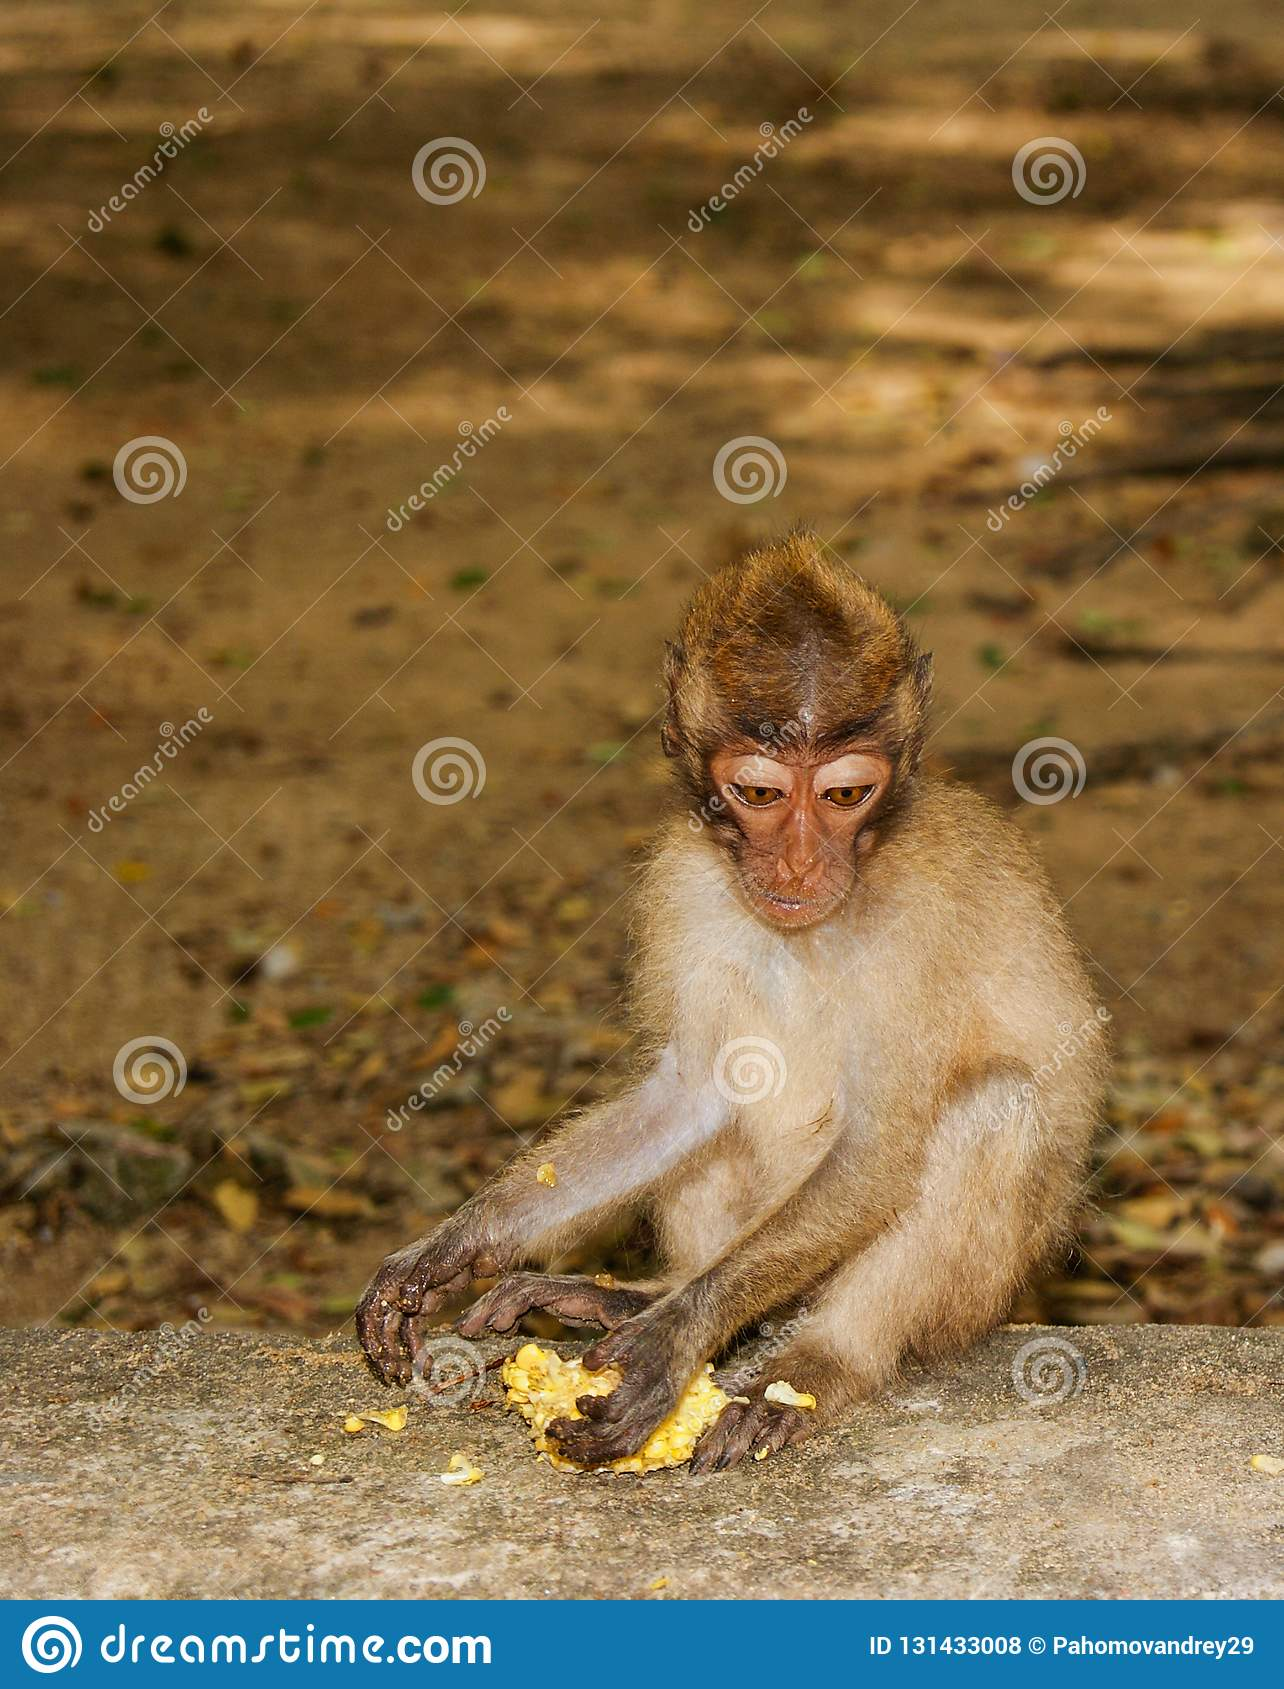 Long-tailed Macaque Monkey eat banana. sitting on the rocks